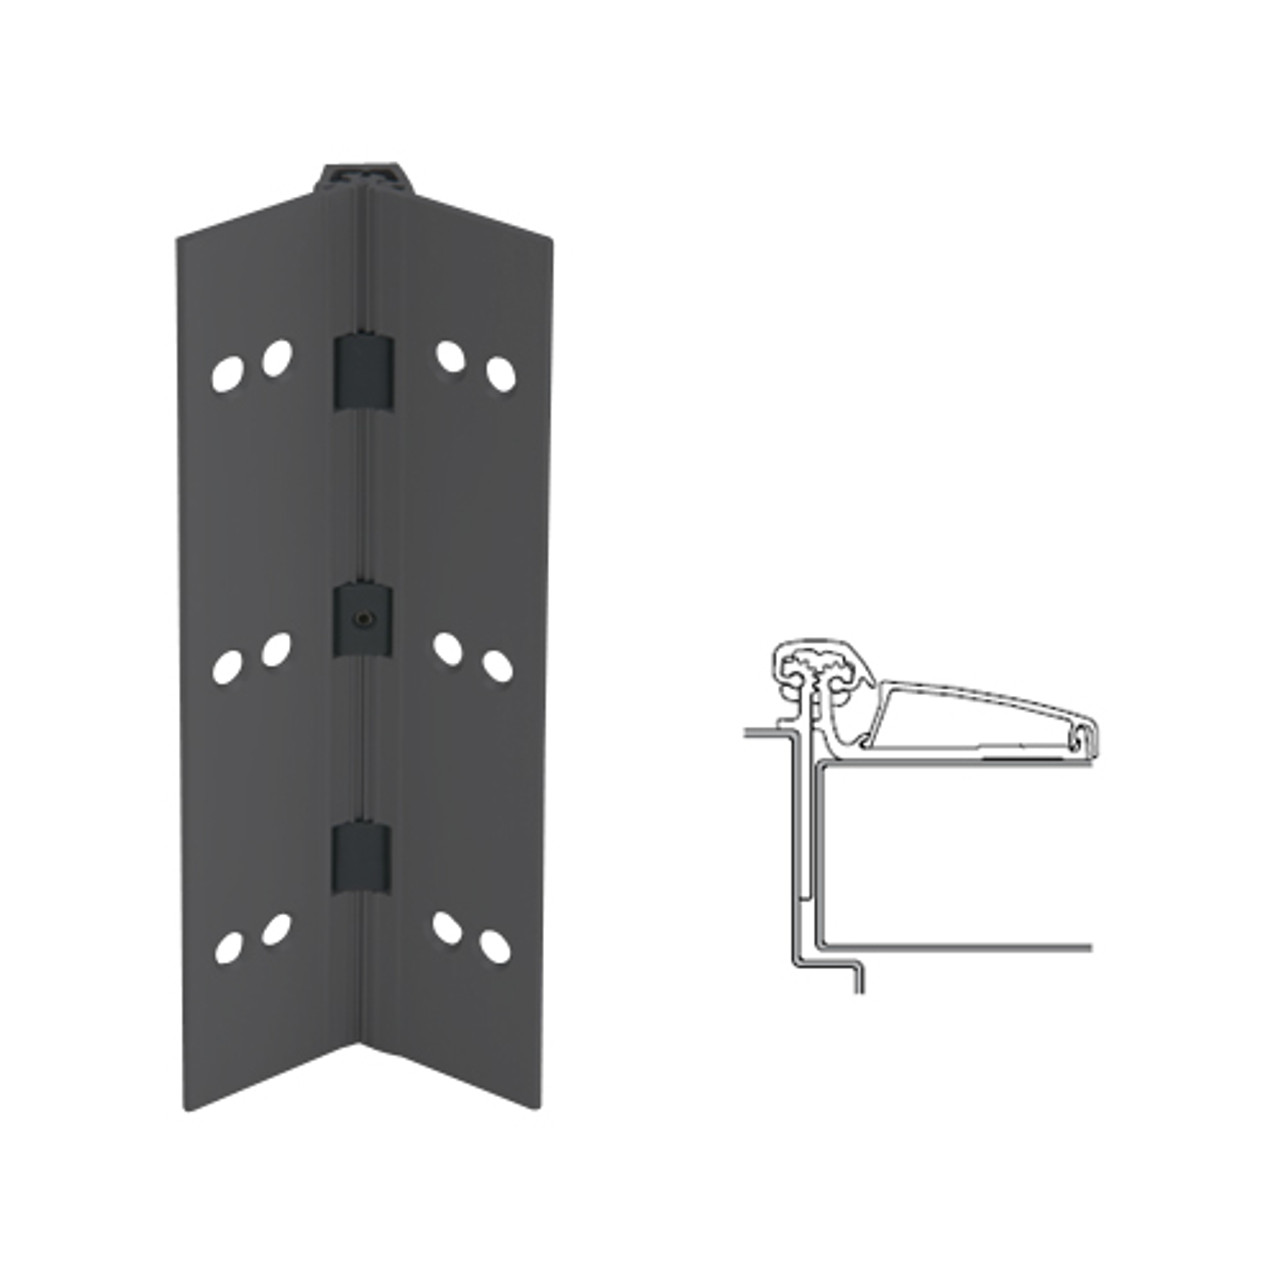 045XY-315AN-85 IVES Adjustable Half Surface Continuous Geared Hinges in Anodized Black